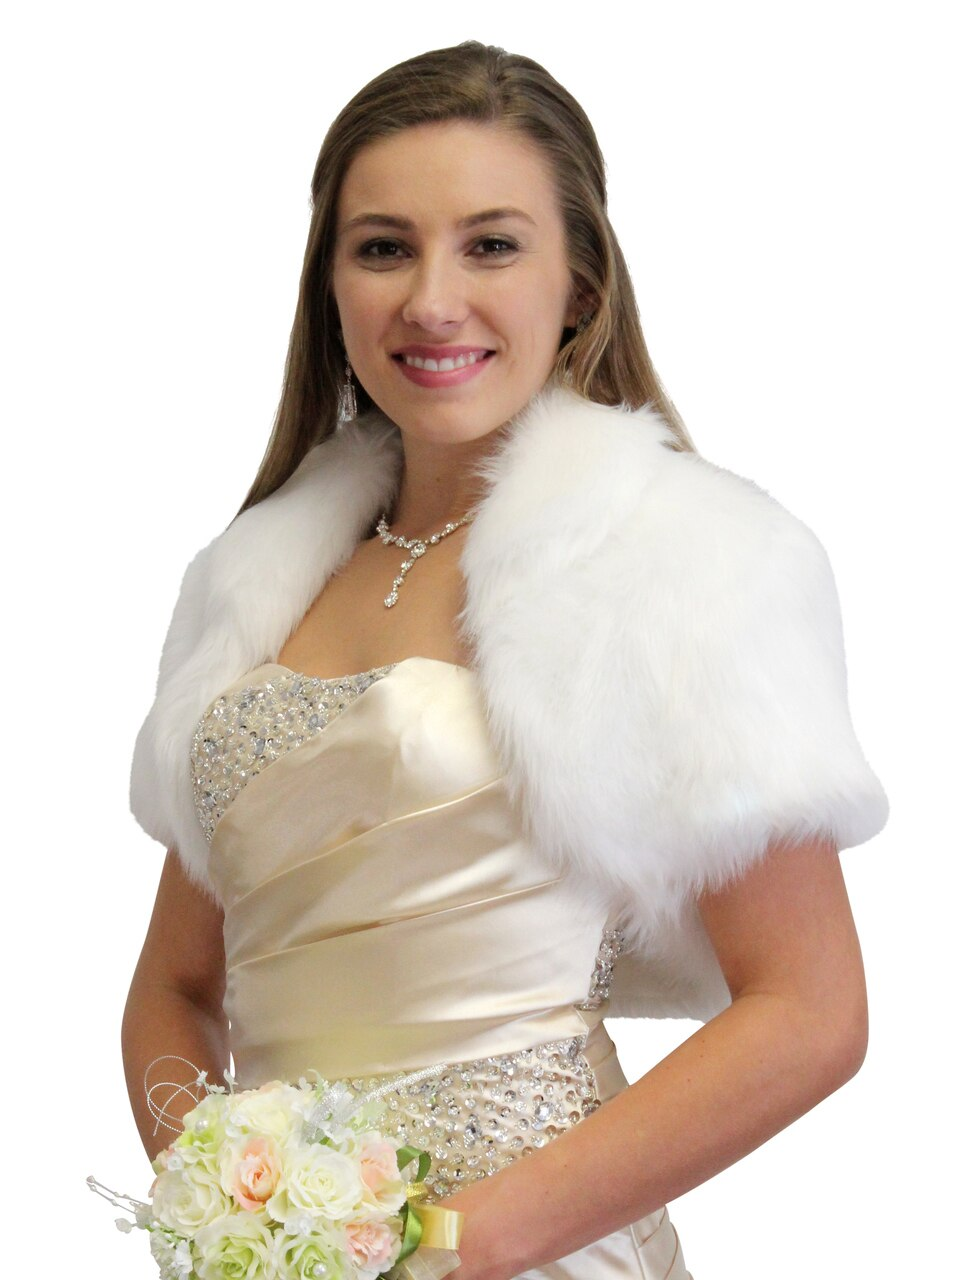 Bridal Faux Fur Bolero, Bridal Bolero Jacket Faux fur shrug, bridal shrug 680F-White